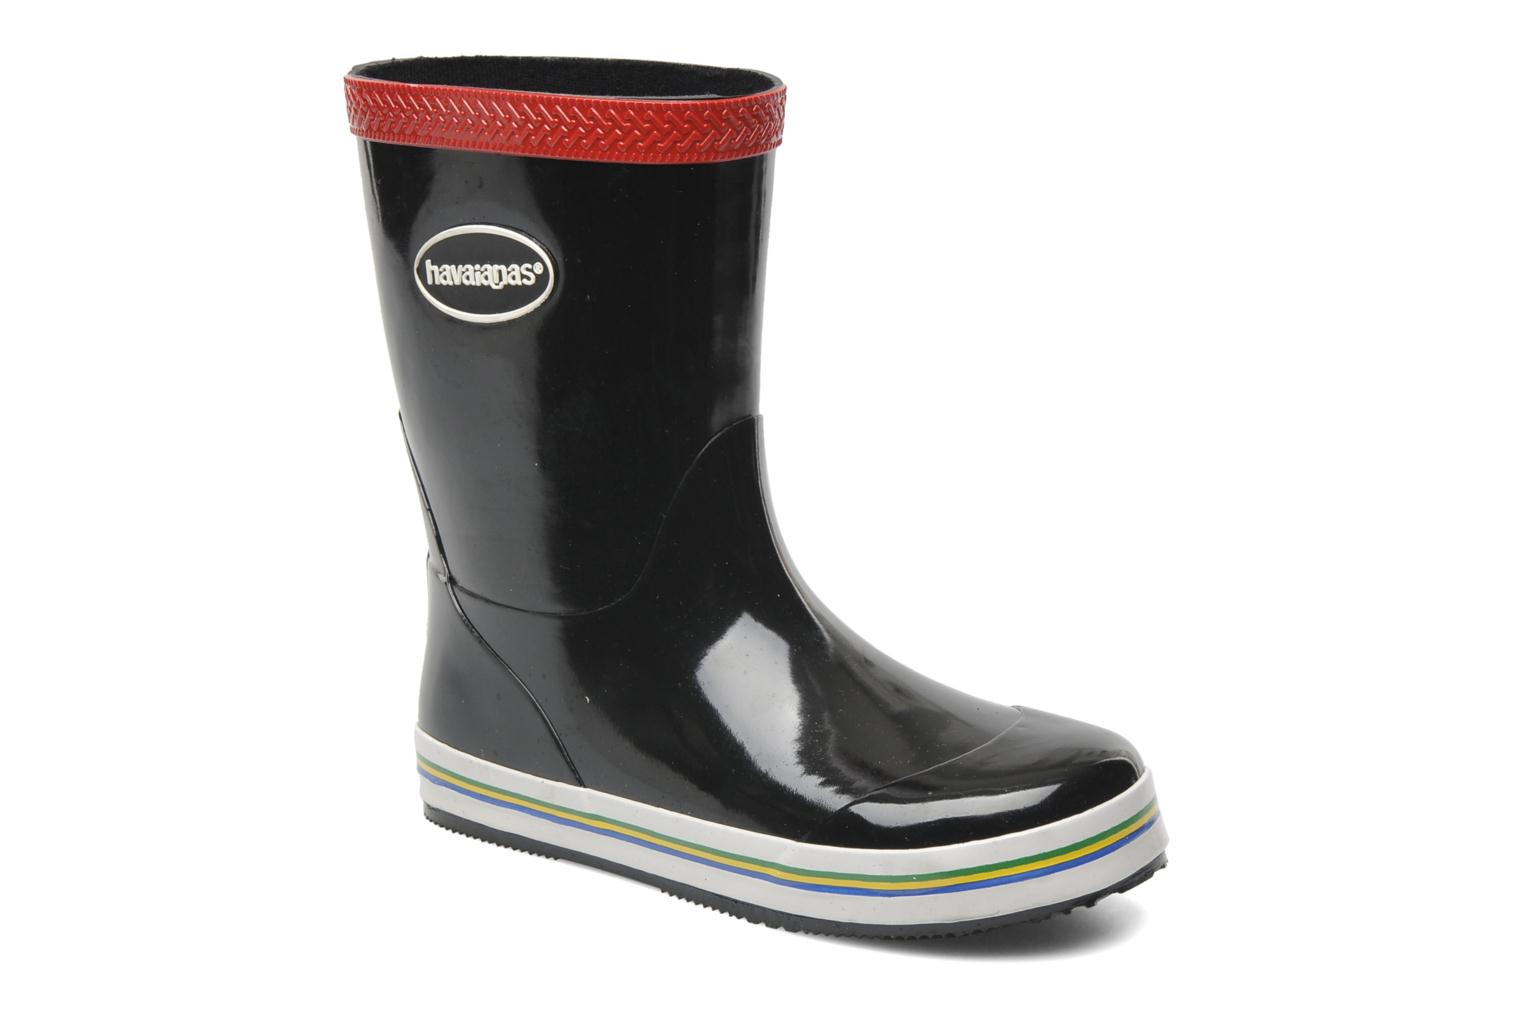 Aqua Kids Rain Boots Black Red